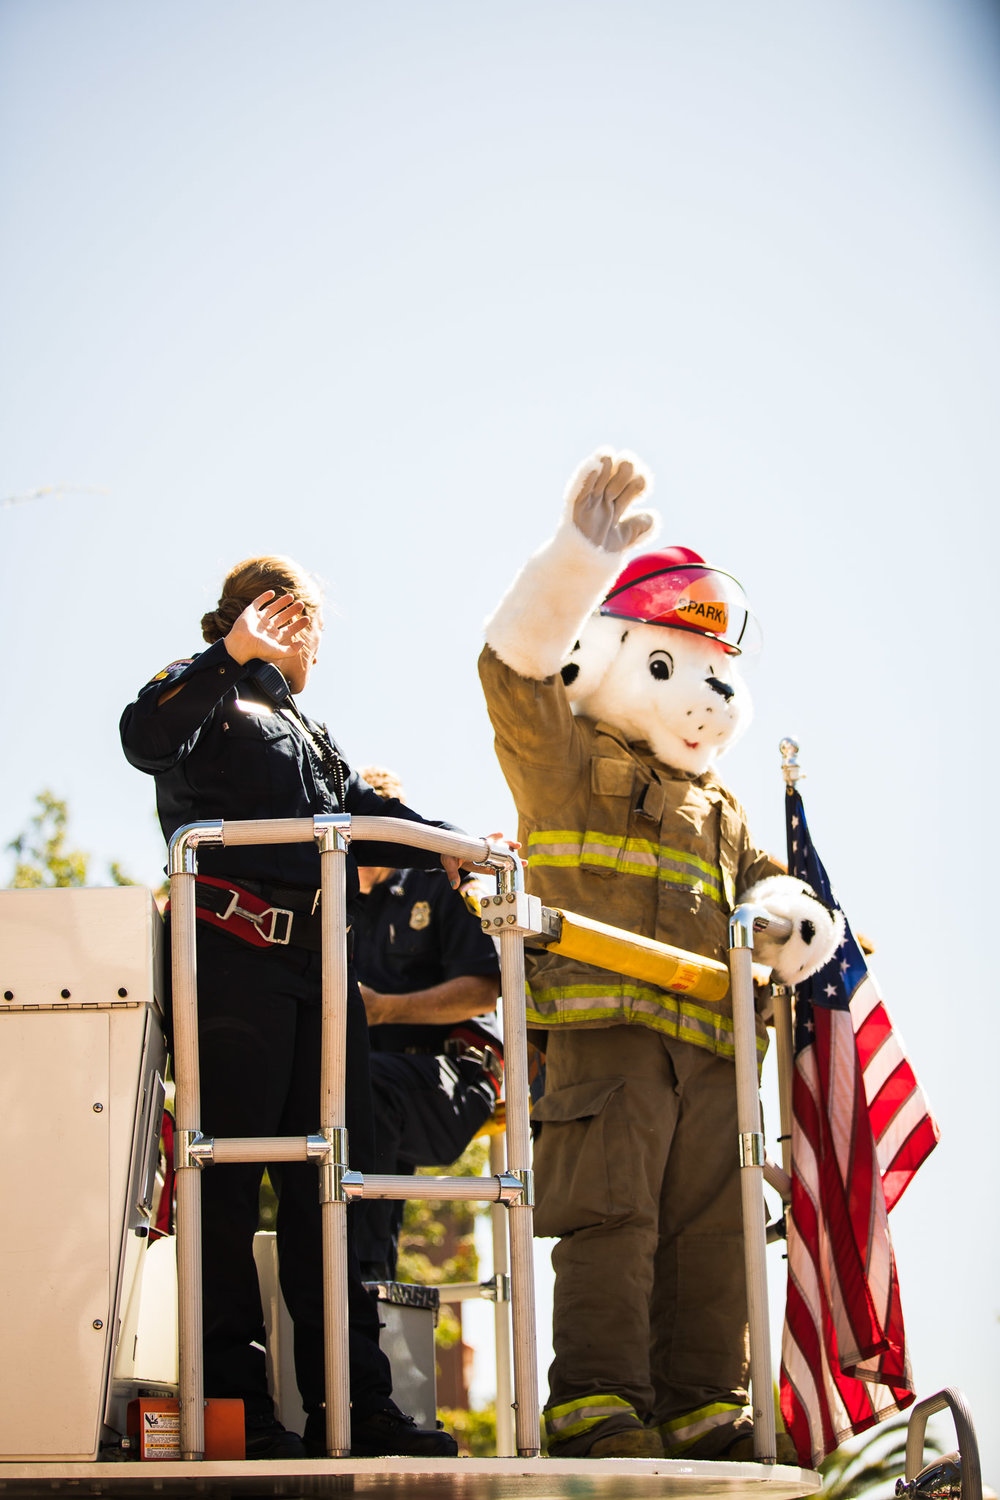 Archer_Inspired_Photography_Morgan_Hill_California_4th_of_july_parade-46.jpg